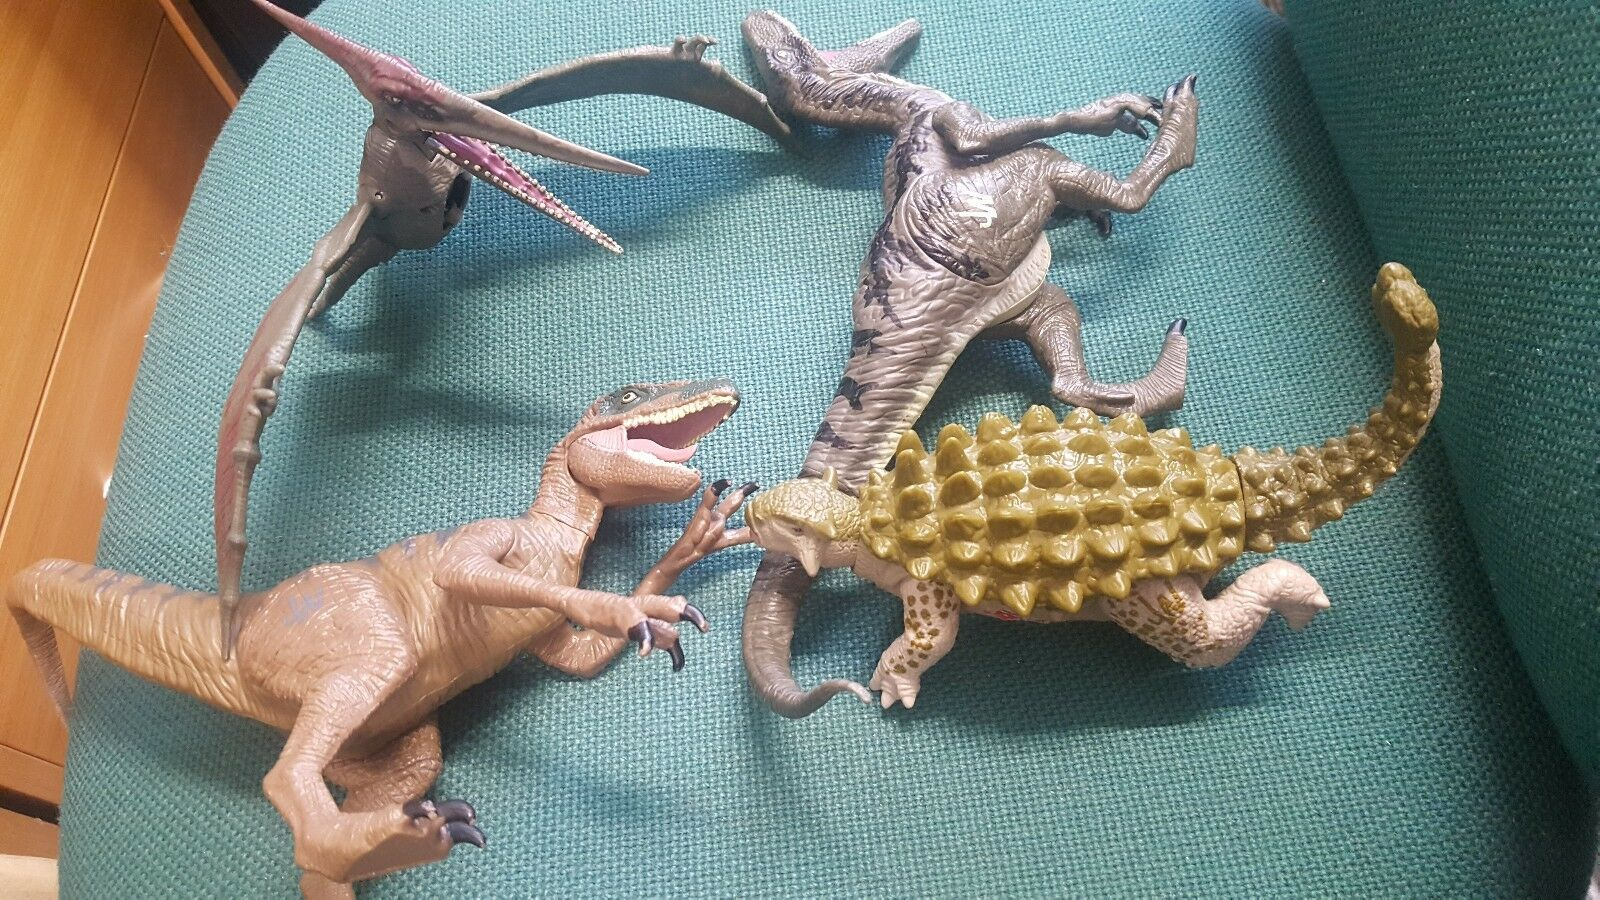 Hasbro Jurassic World Collection Dinosaur Pteranodon Battle Wound Action Figures